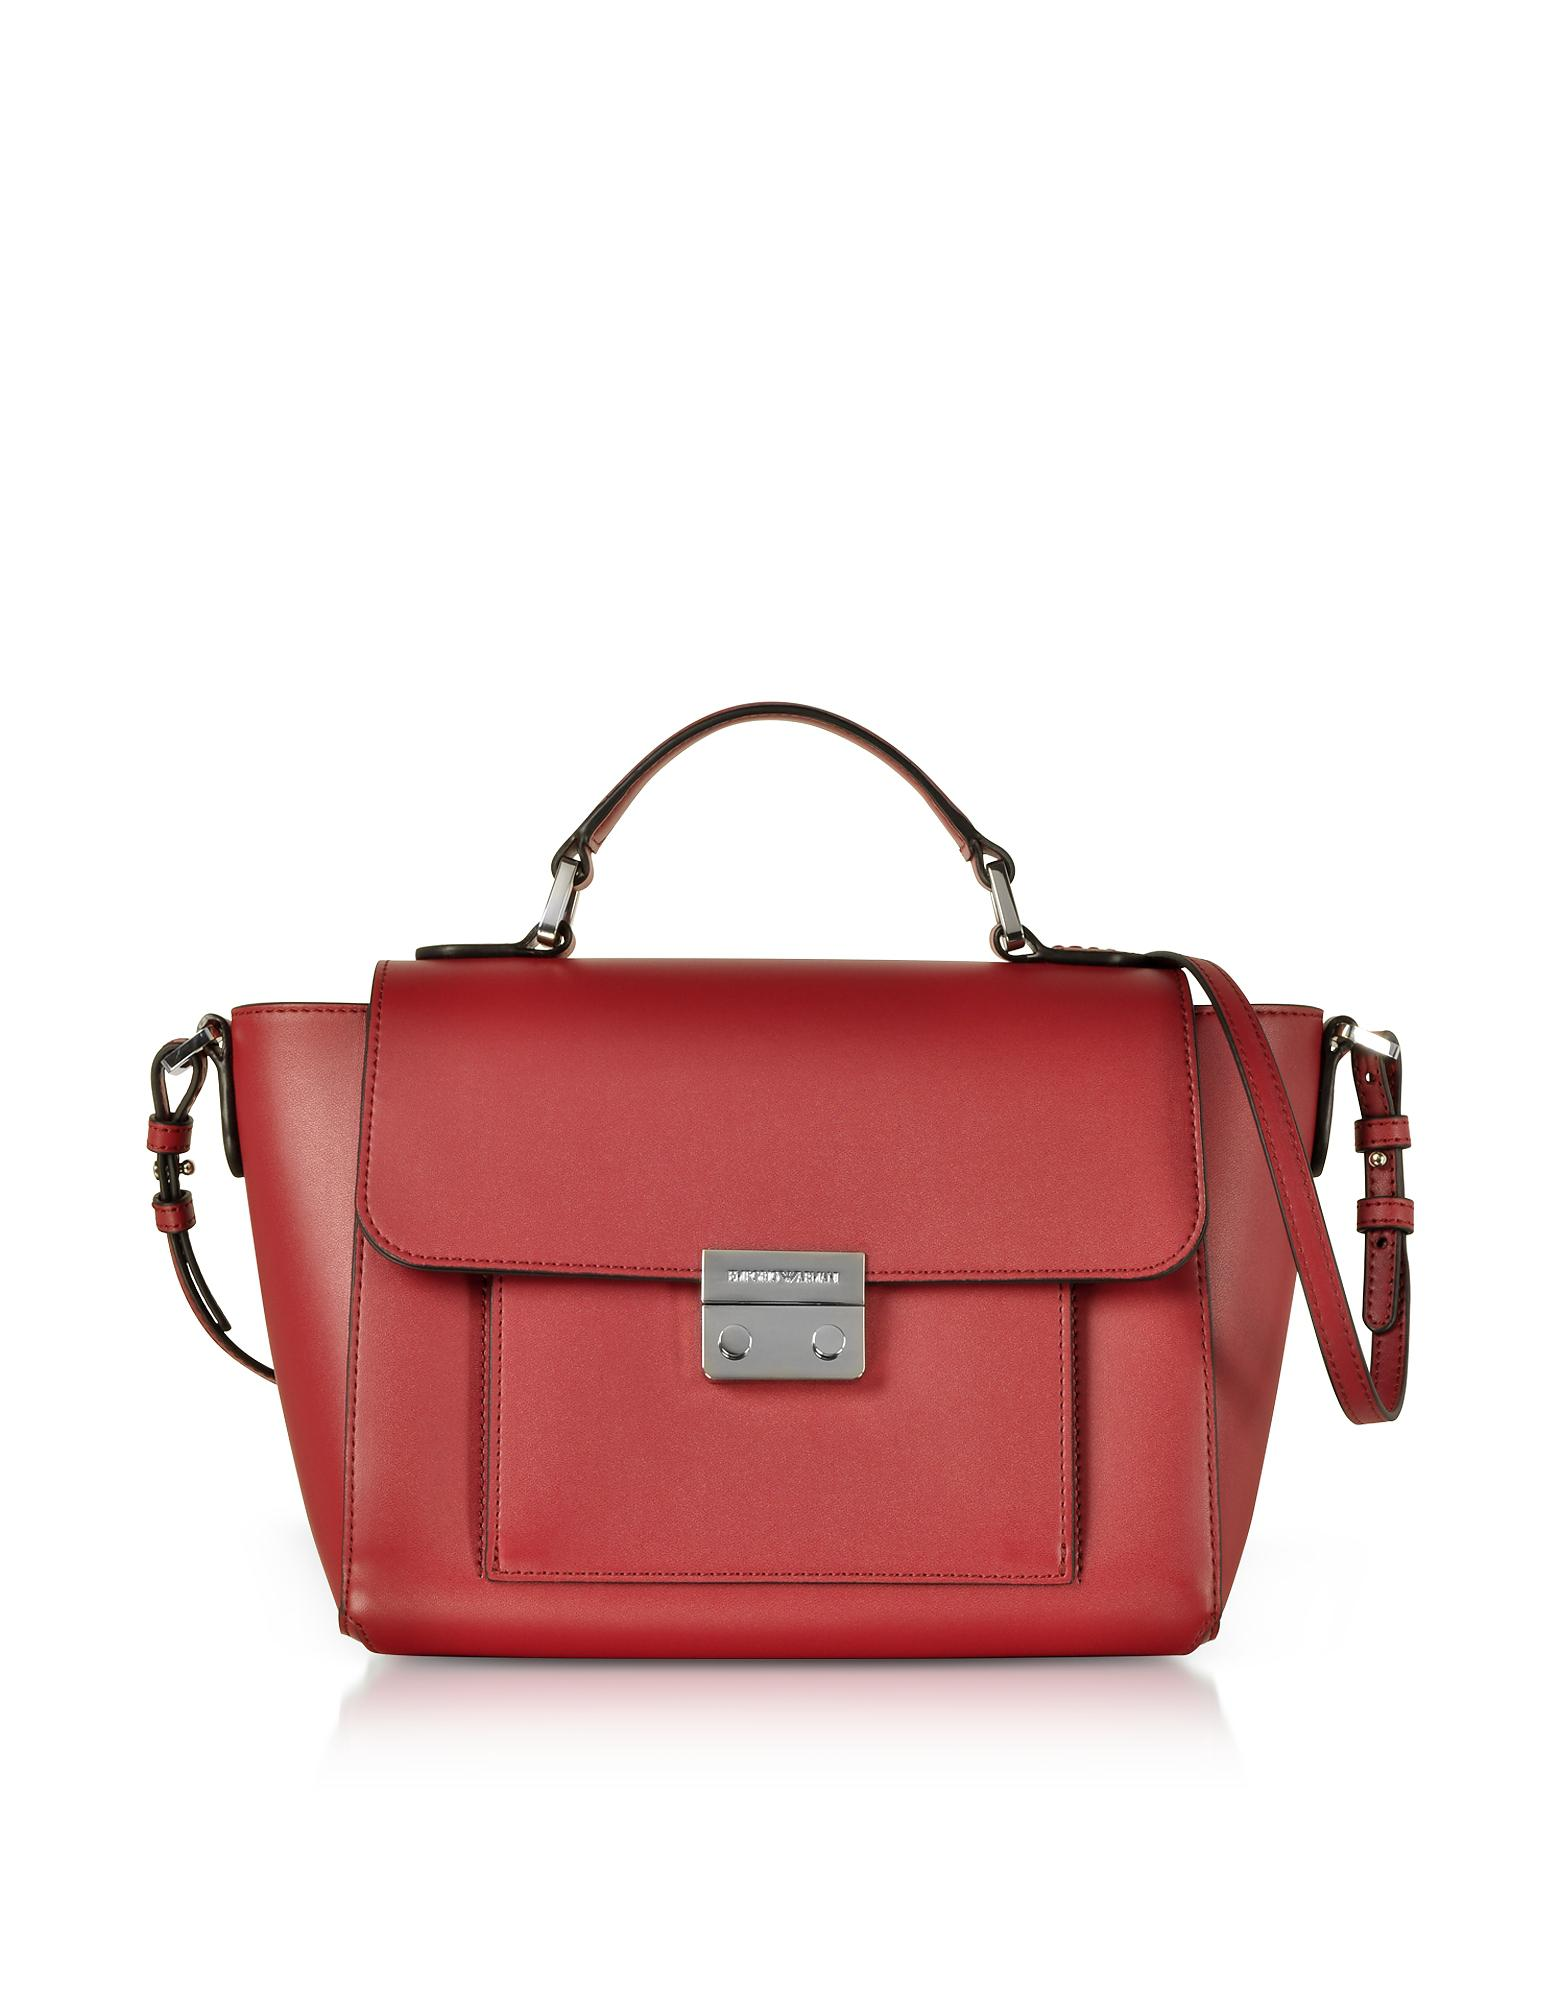 0196bc4a73c0 Lyst - Emporio Armani Smooth Leather Top-handle Shoulder Bag in Red